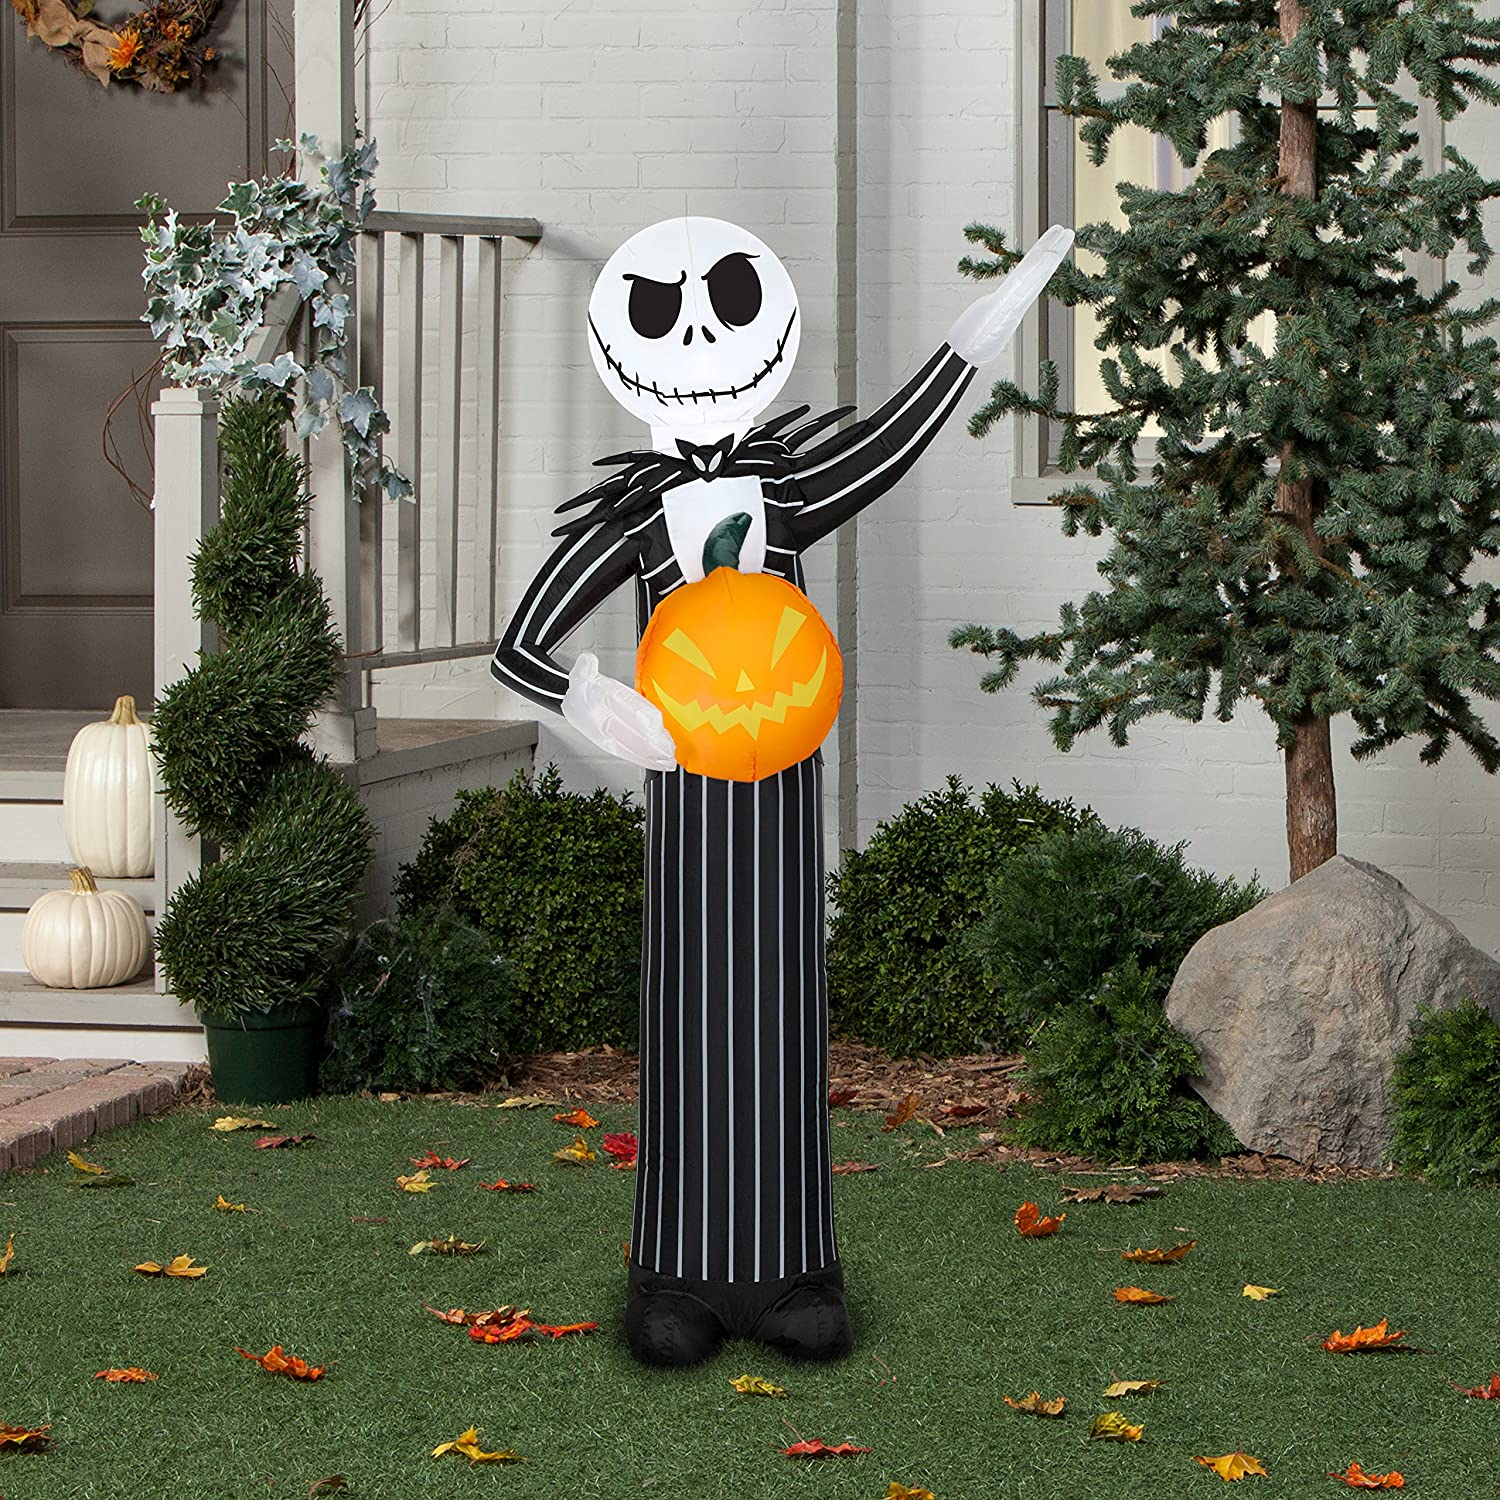 Disney Gemmy Nightmare Before Christmas Jack Skellington Halloween Inflatable 5 Feet Tall